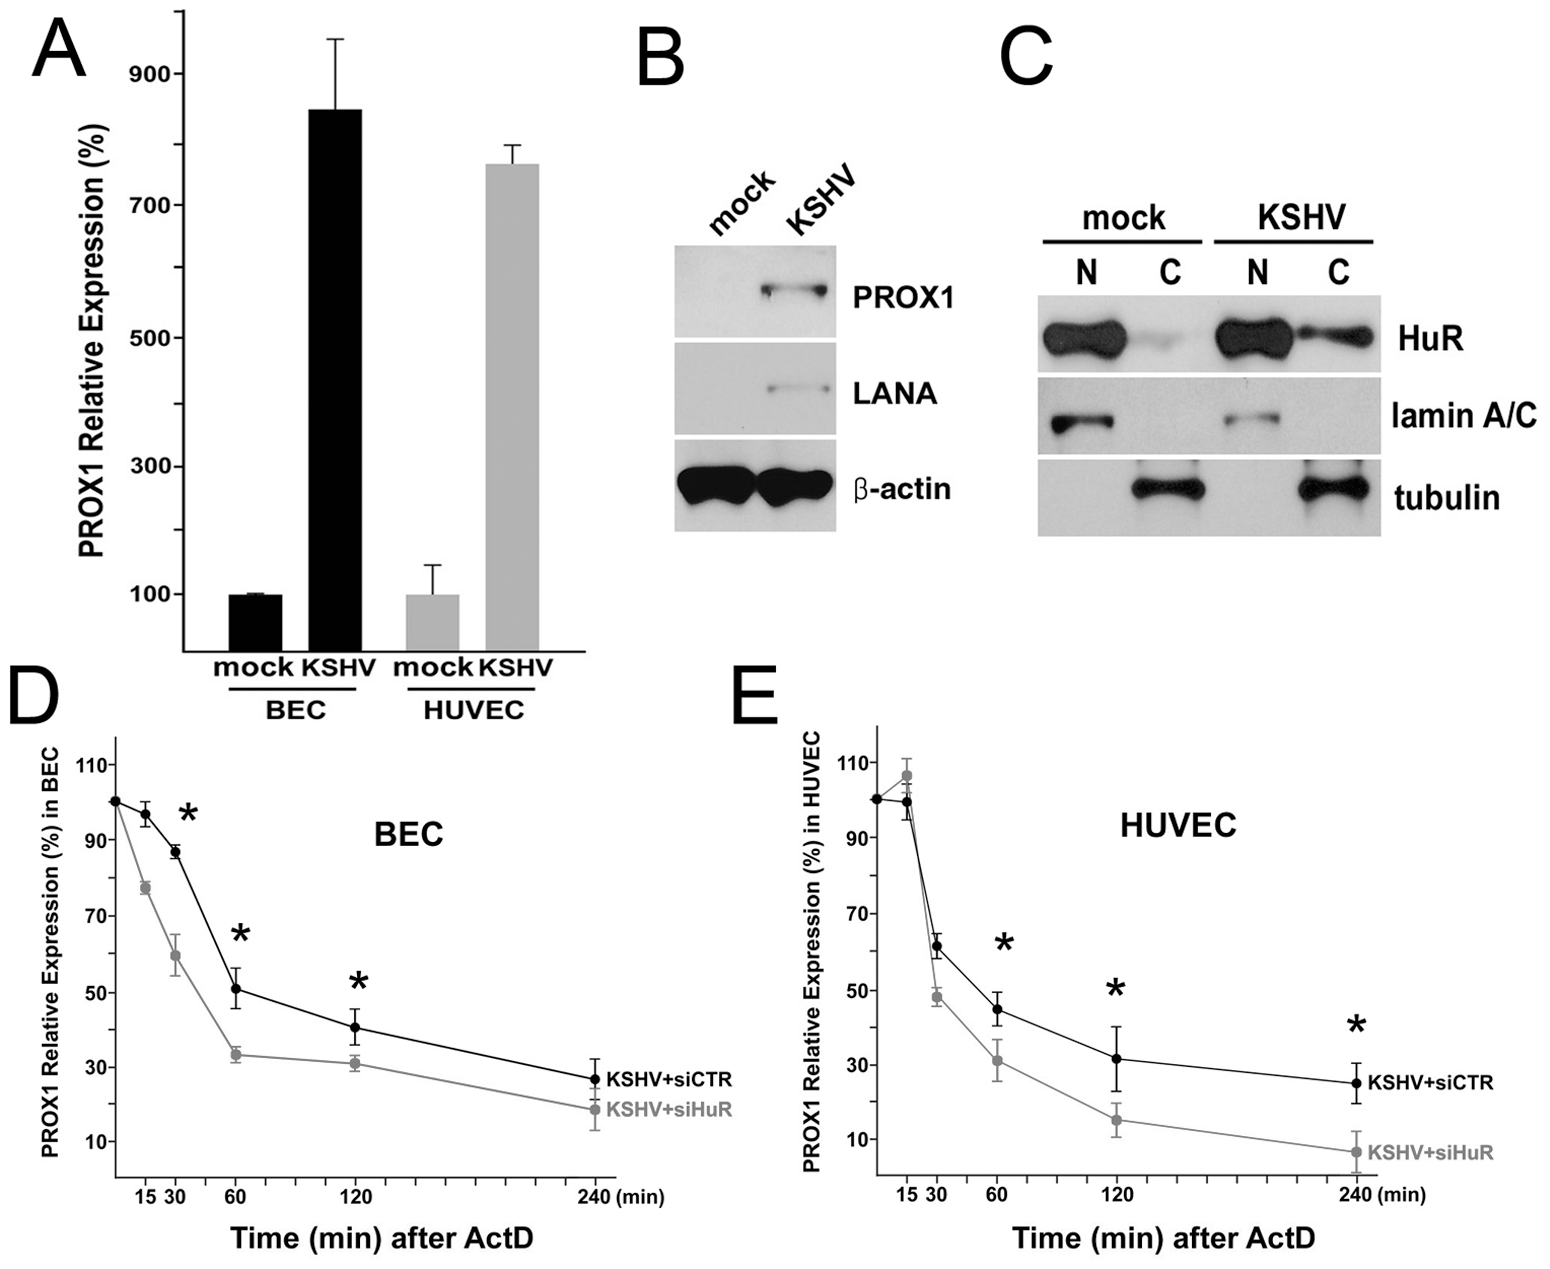 KSHV upregulates PROX1 by promoting its mRNA stability by HuR protein in primary BECs and HUVECs.